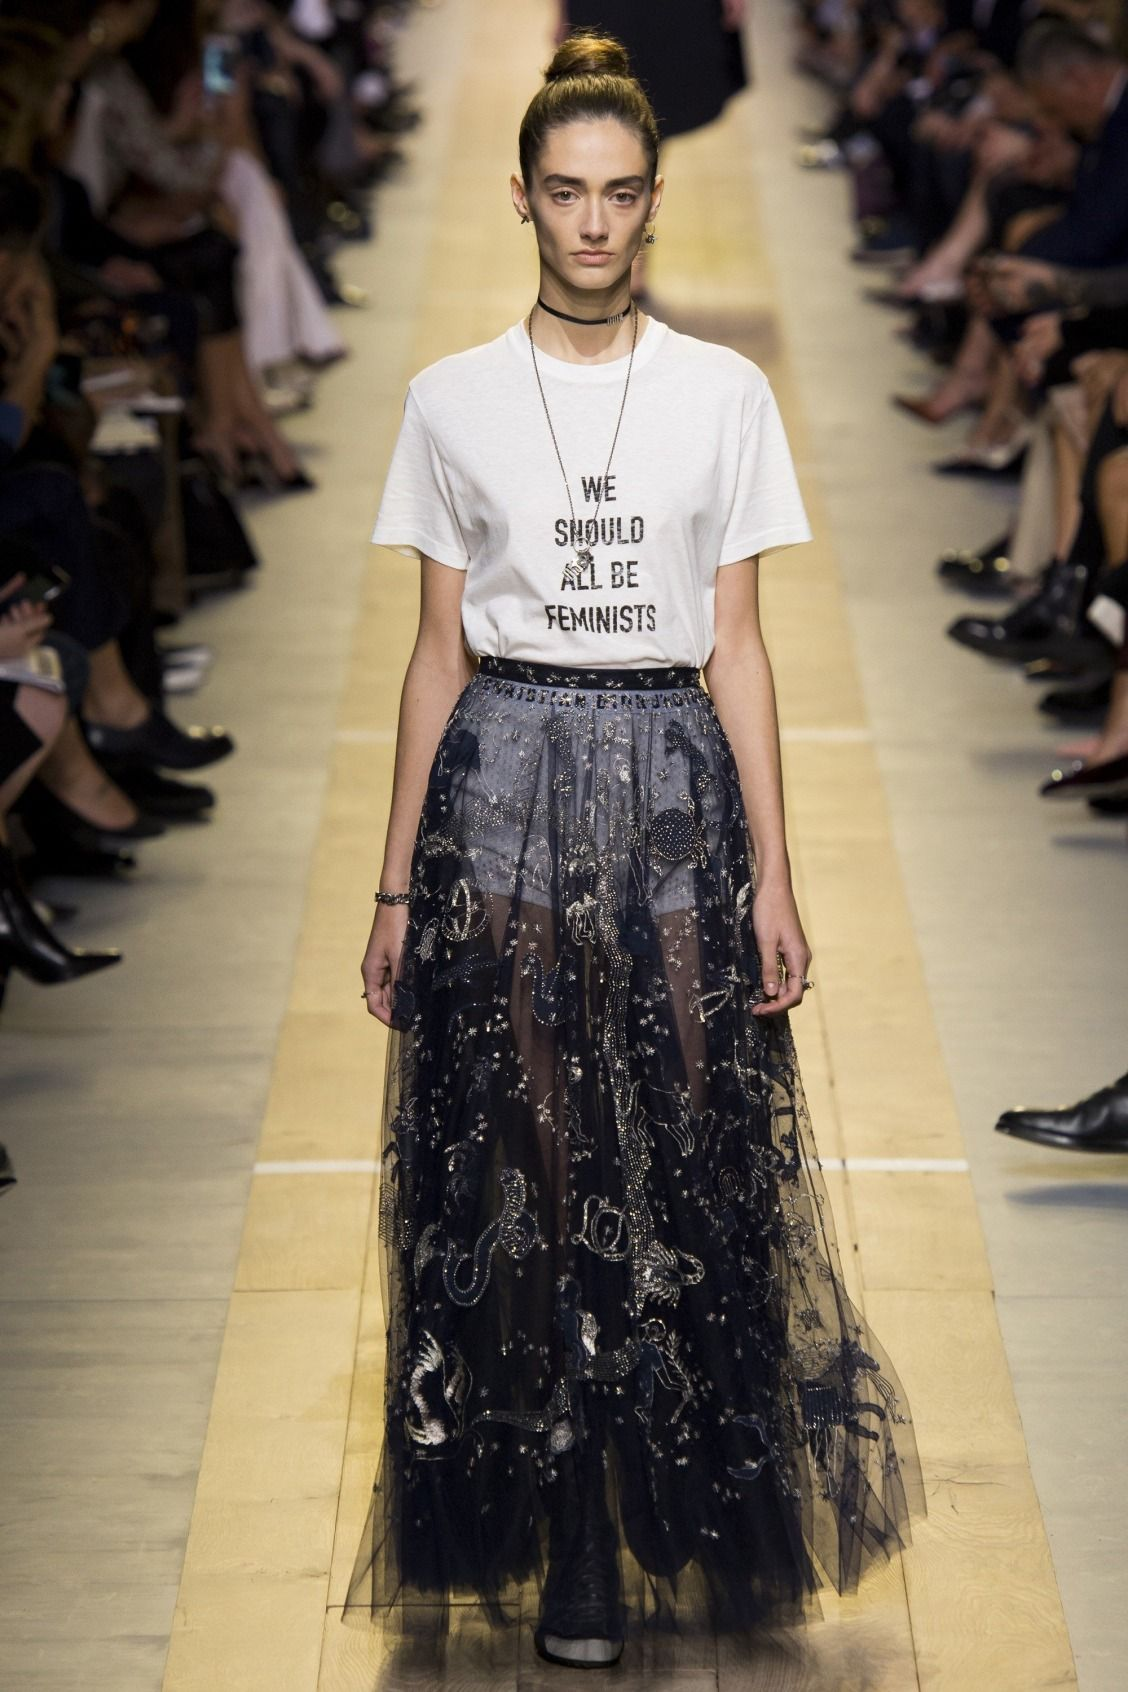 Vogue's Fashion and Accessories Market Director picks out the best looks from Spring 2017 Paris Fashion Week: Christian Dior.